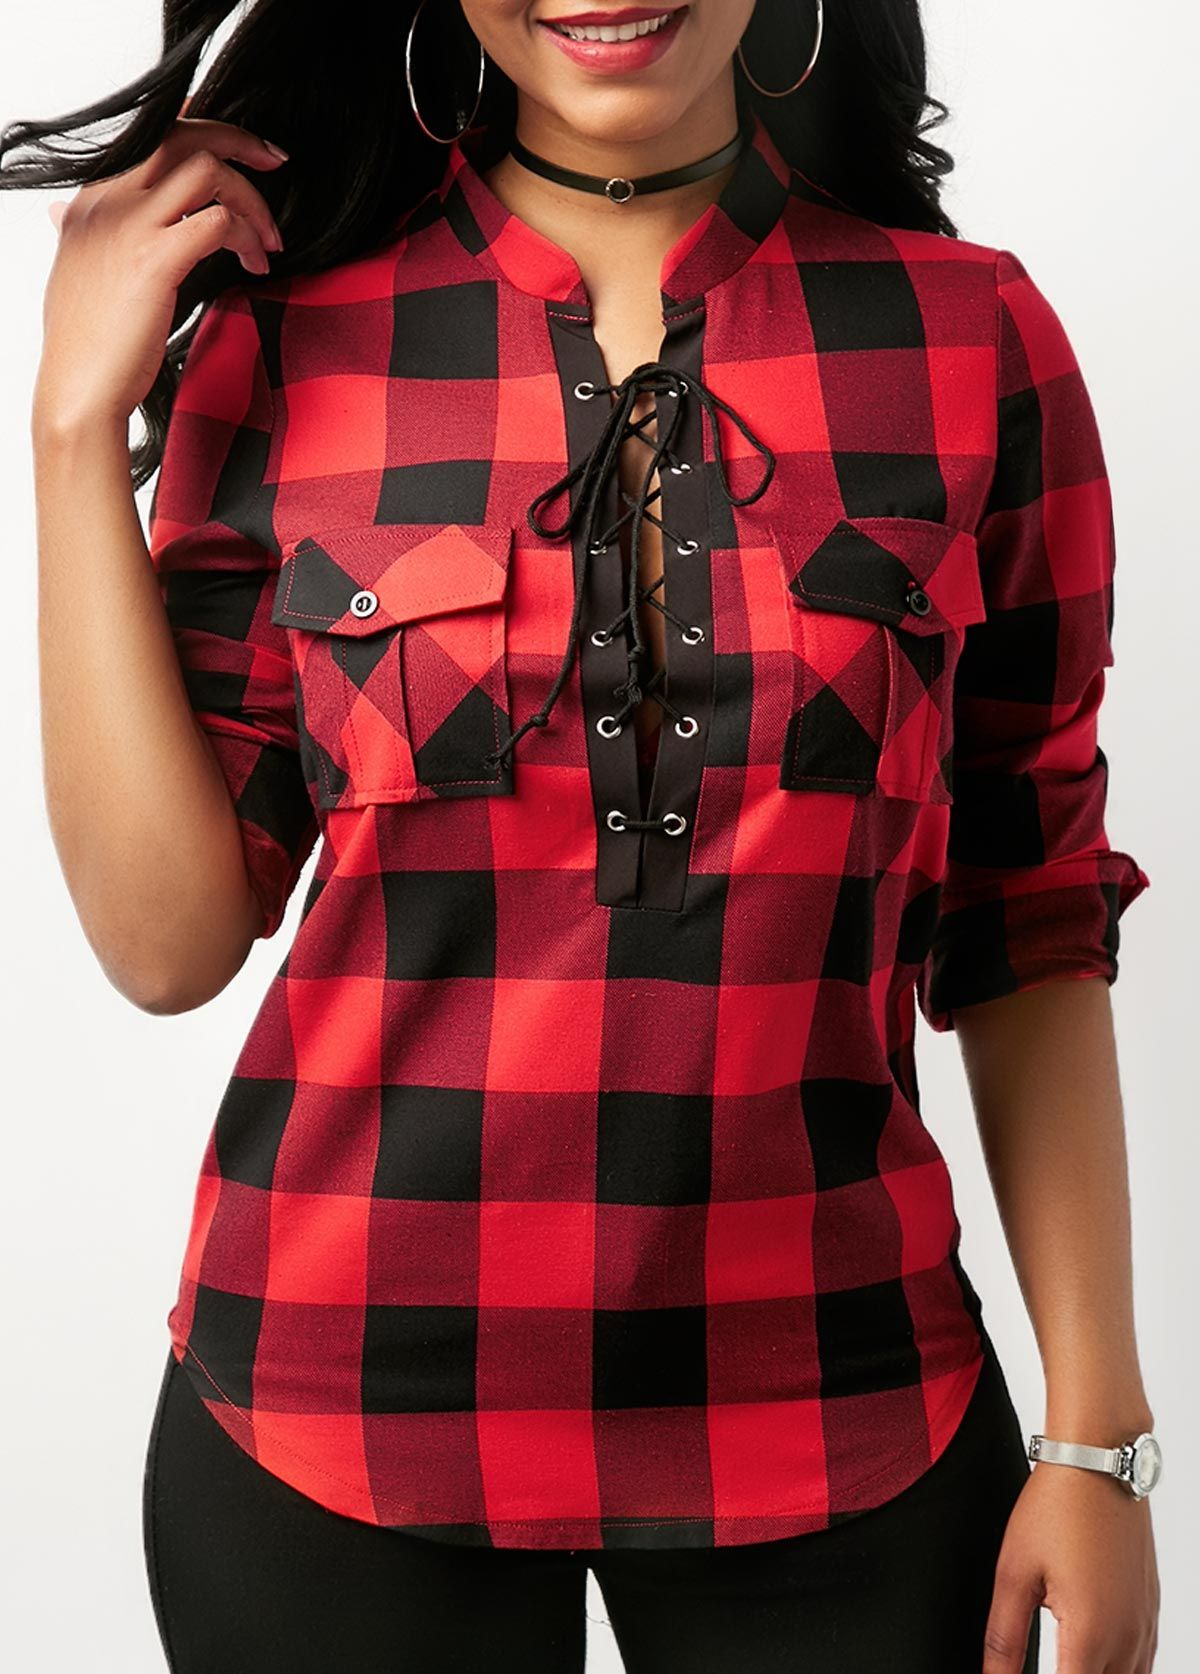 acd040272d5dcb Curved Plaid Print Lace Up Front Red Blouse